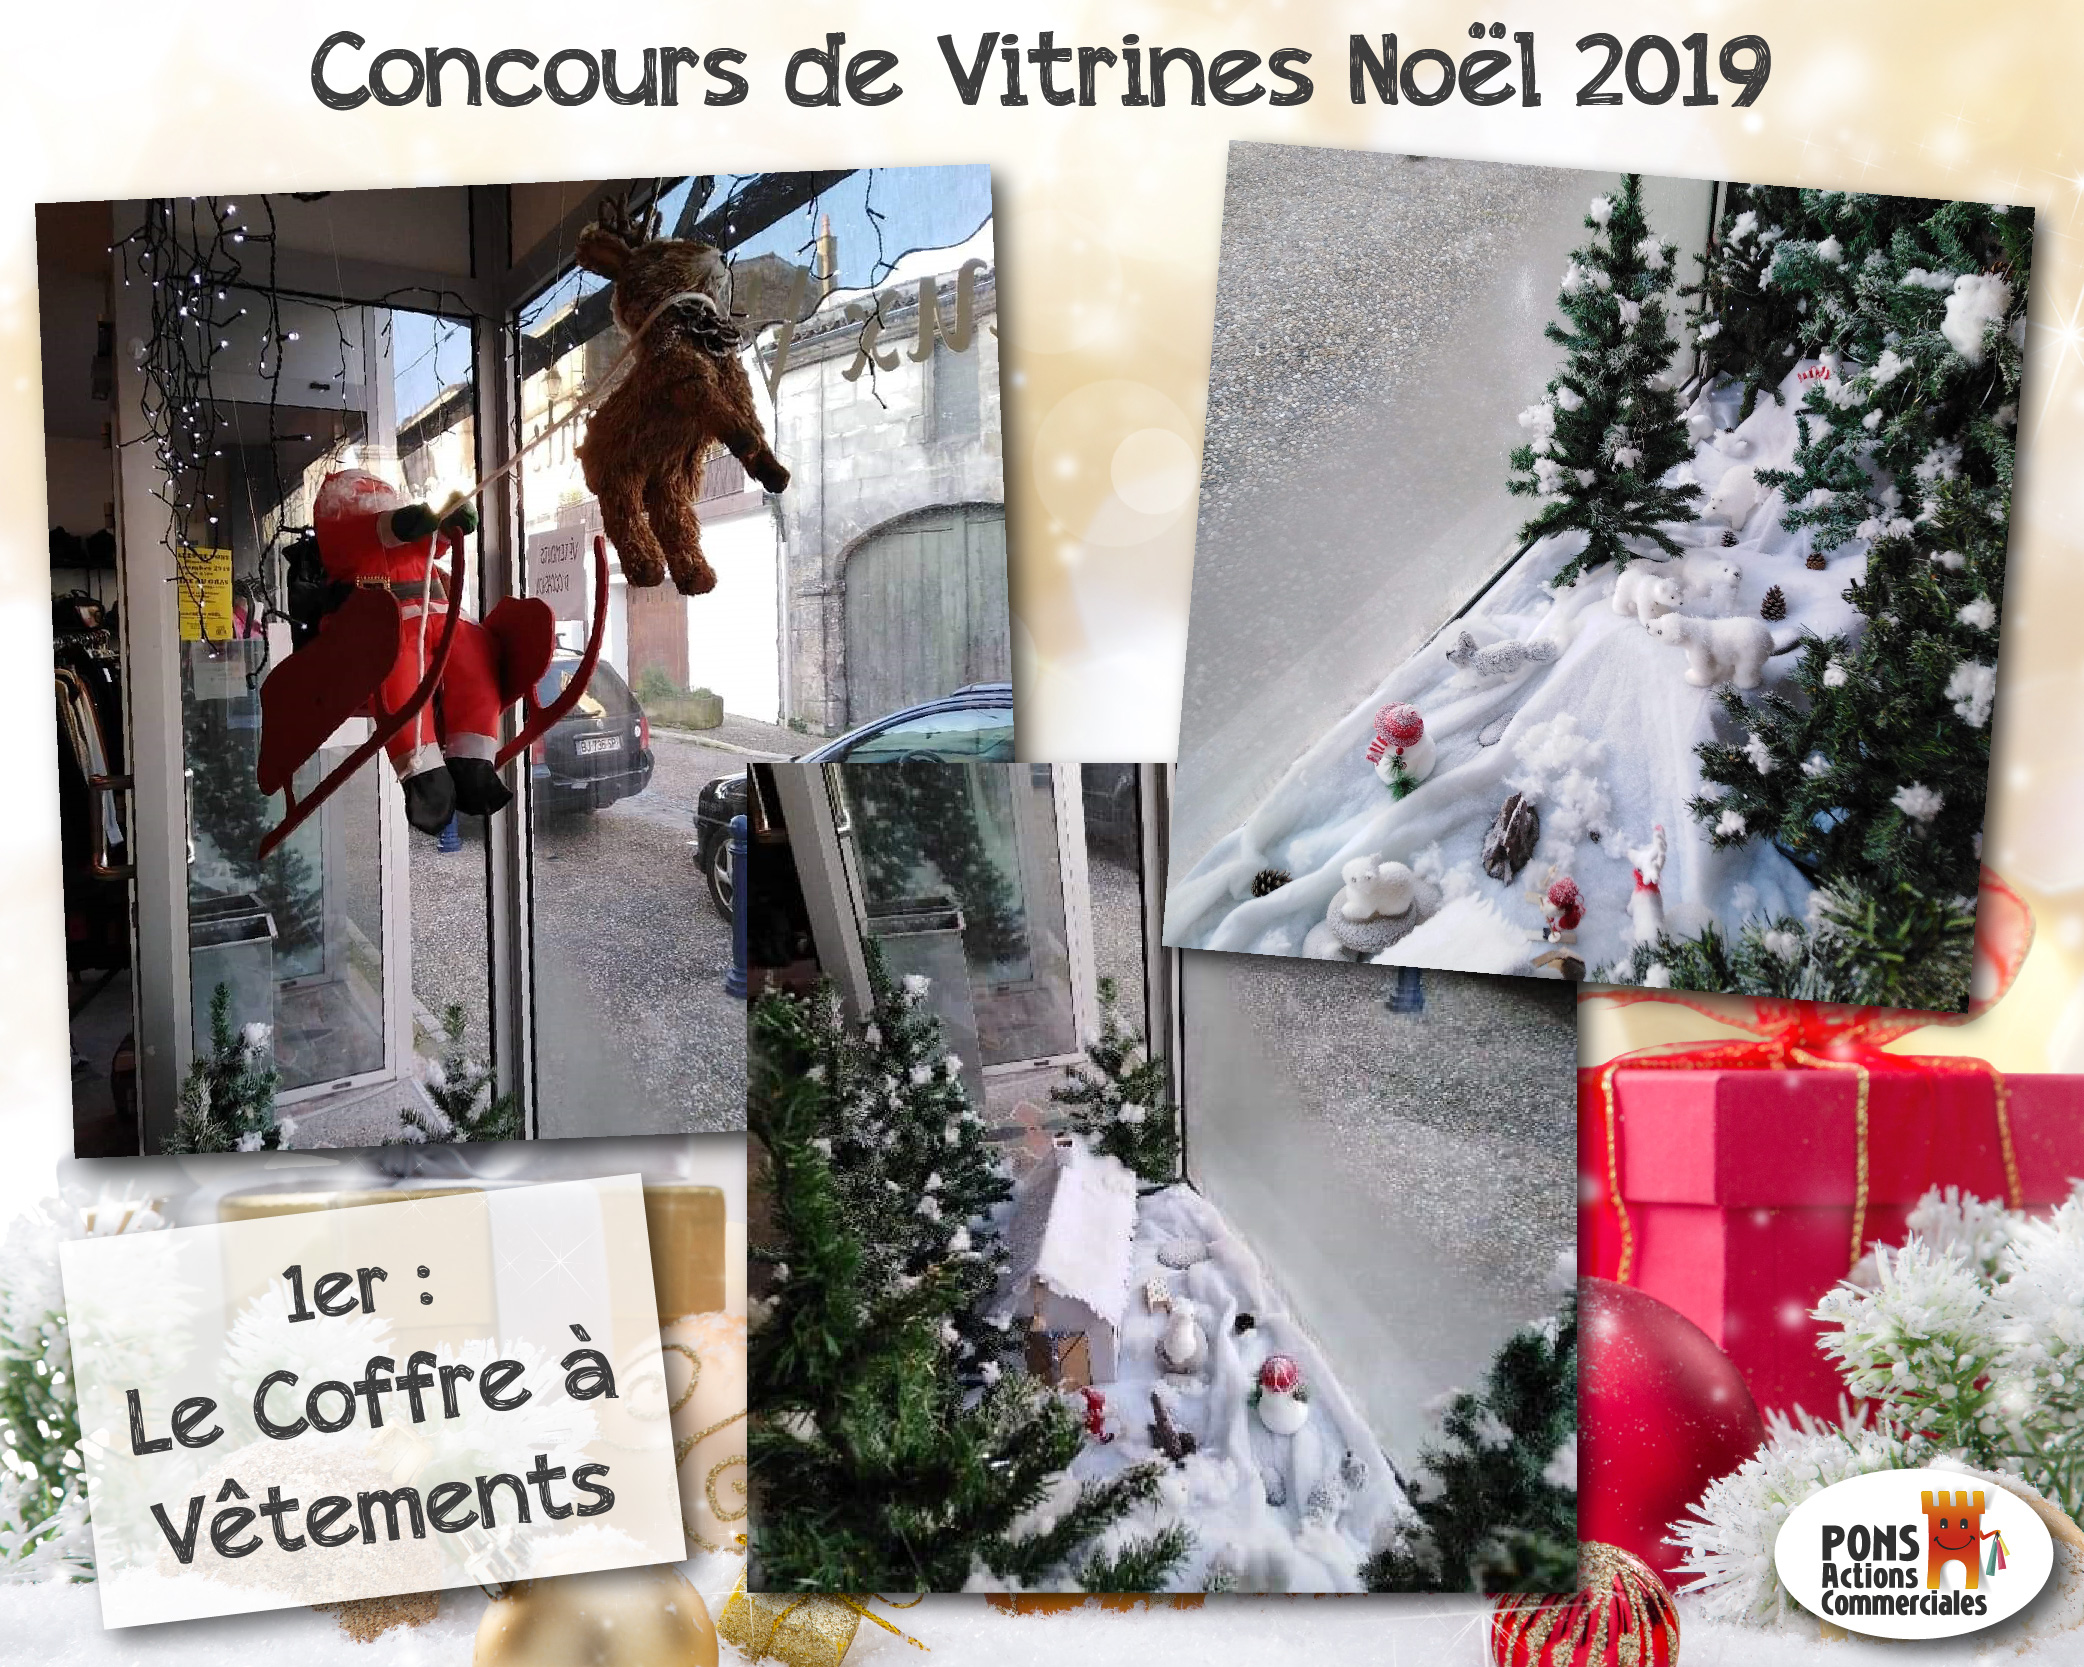 Pons Actions Commerciales - Vitrines2019-Gagnants - Le Coffre à Vêtements